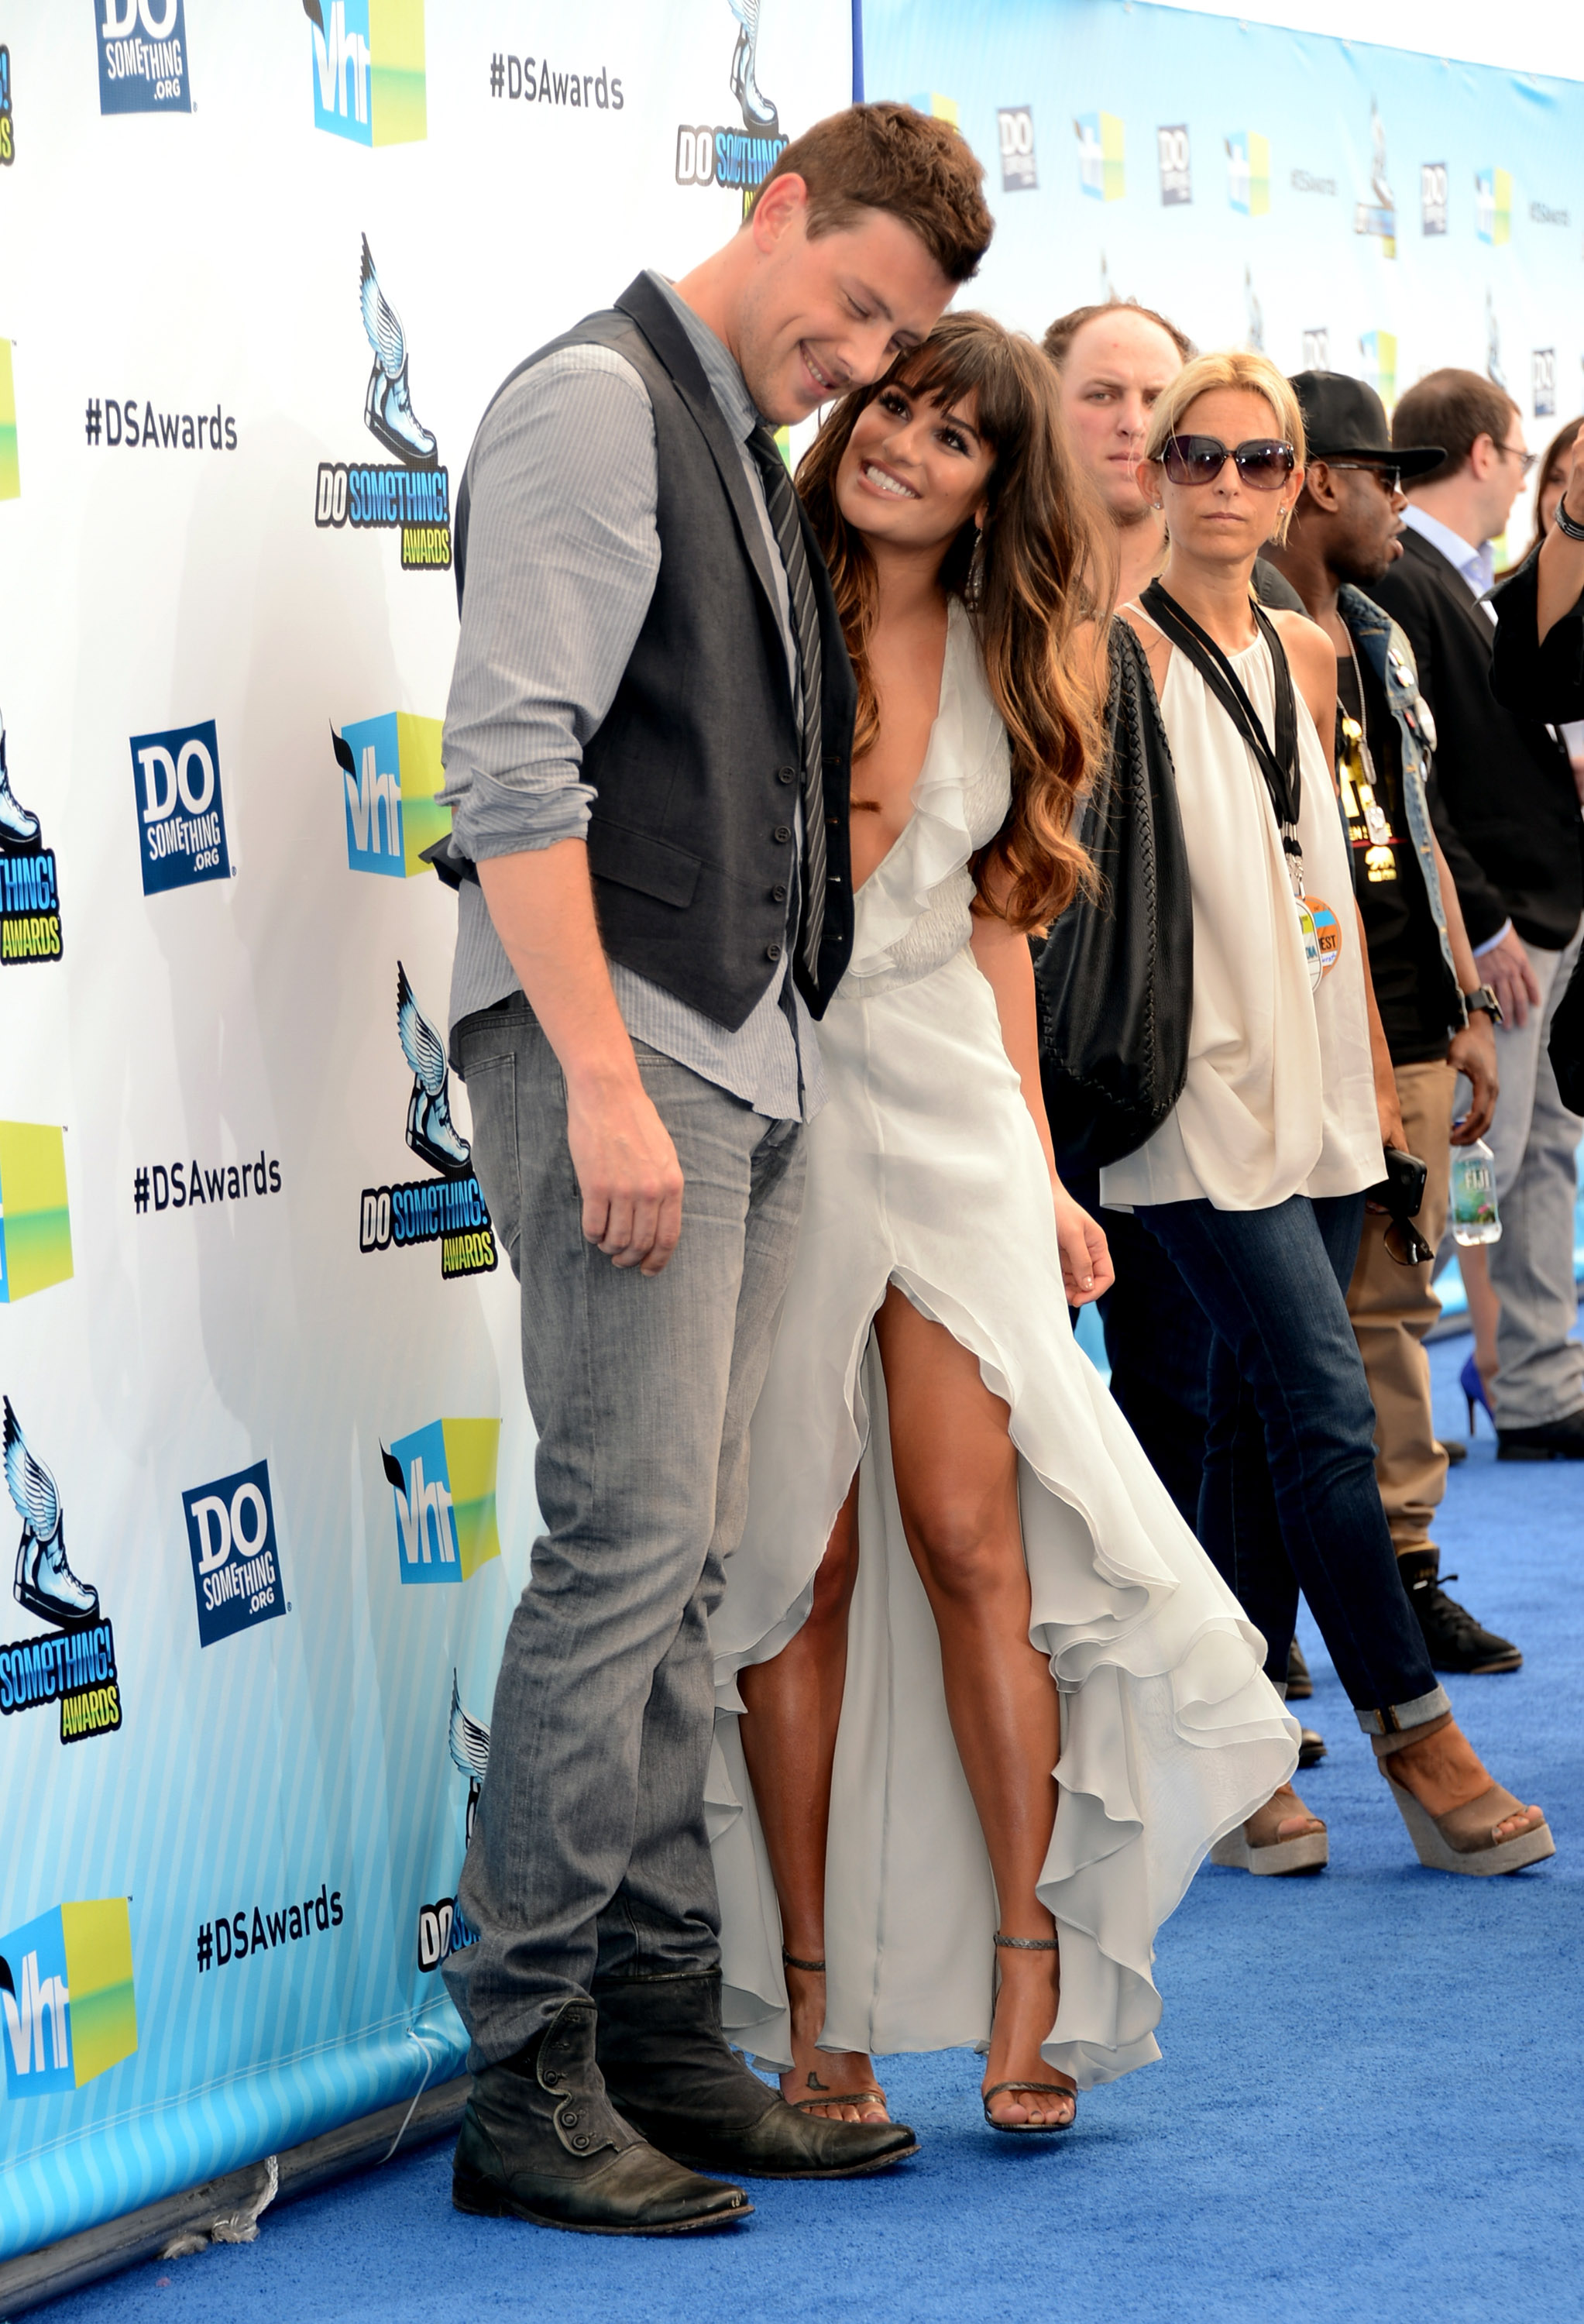 Lea Michele and Cory Monteith flirted on the blue carpet.